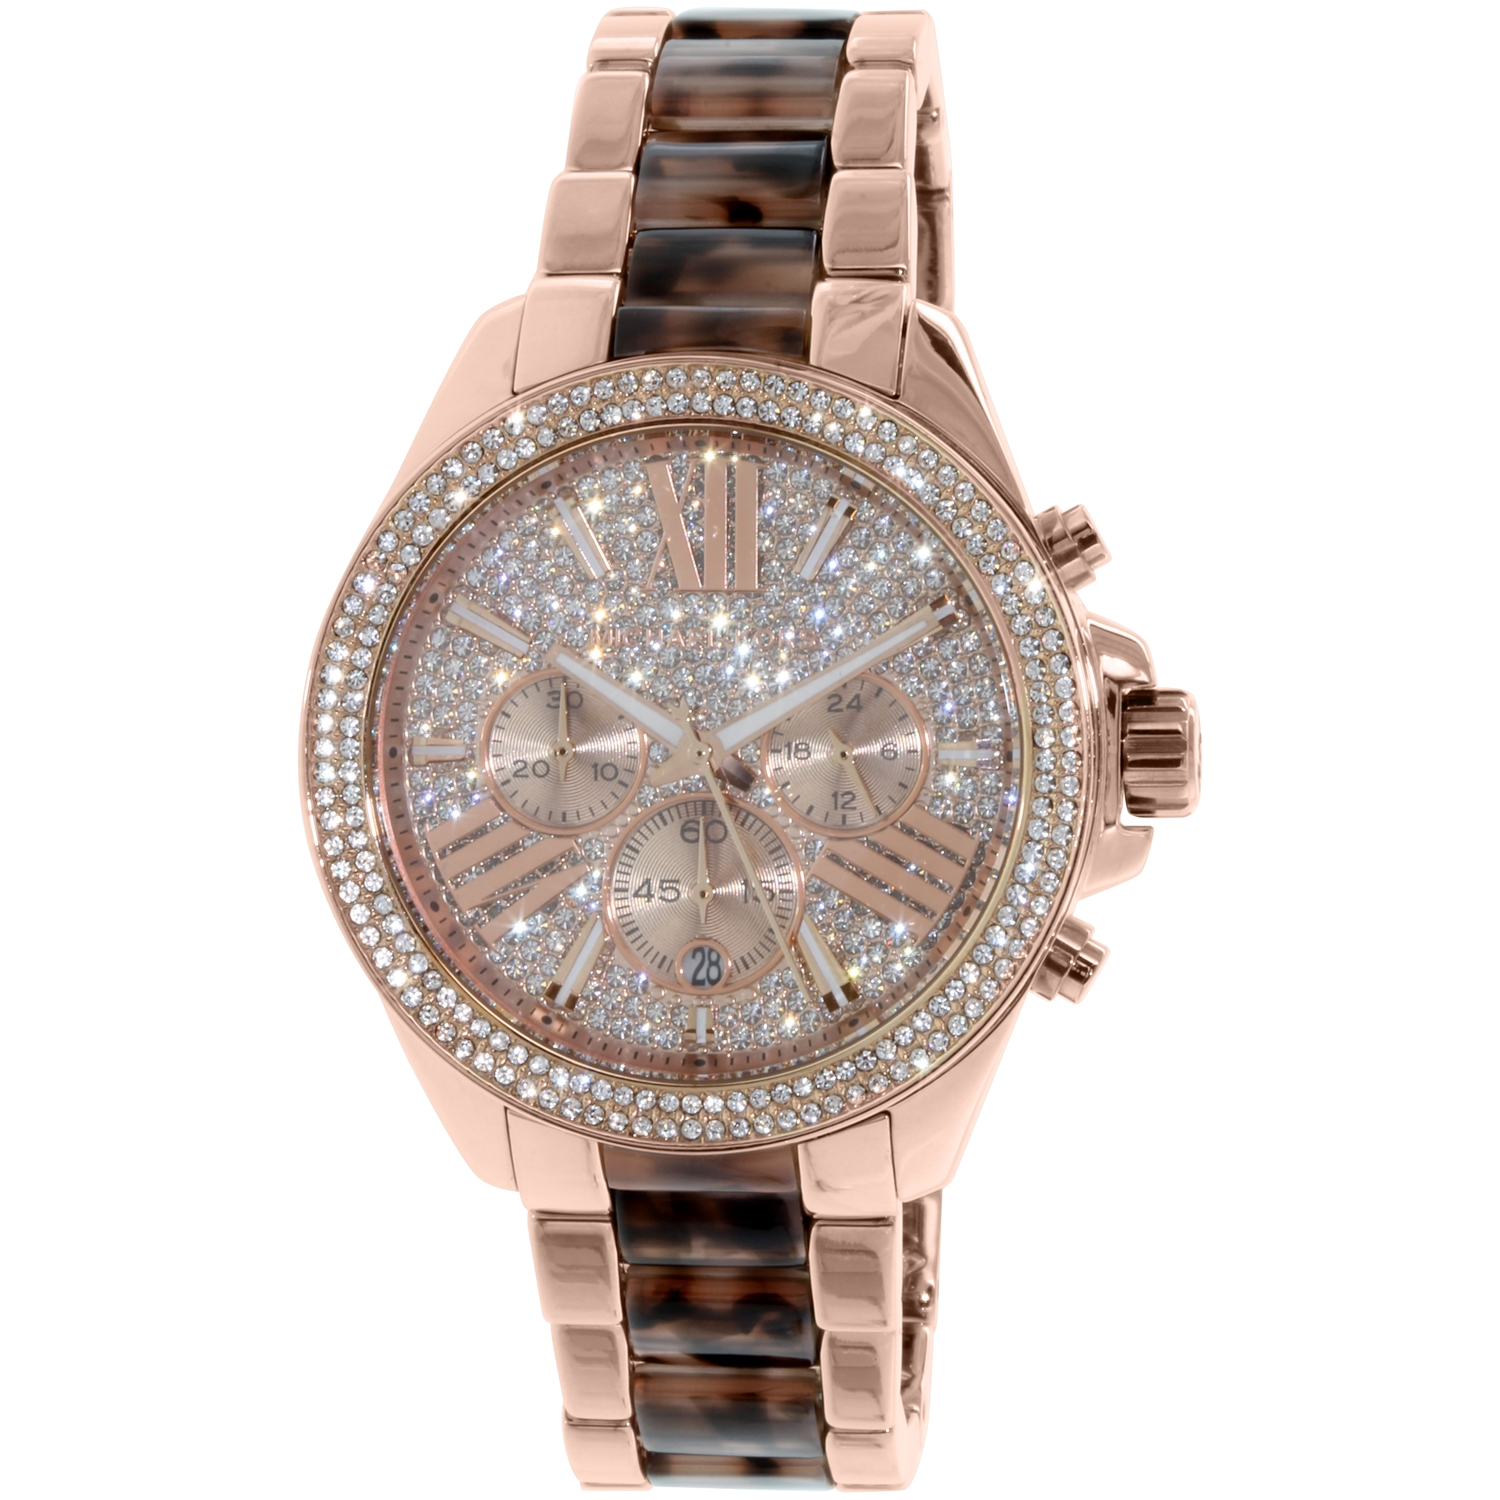 Michael Kors Women's Wren MK6159 Rose Gold Stainless-Steel Quartz Fashion Watch